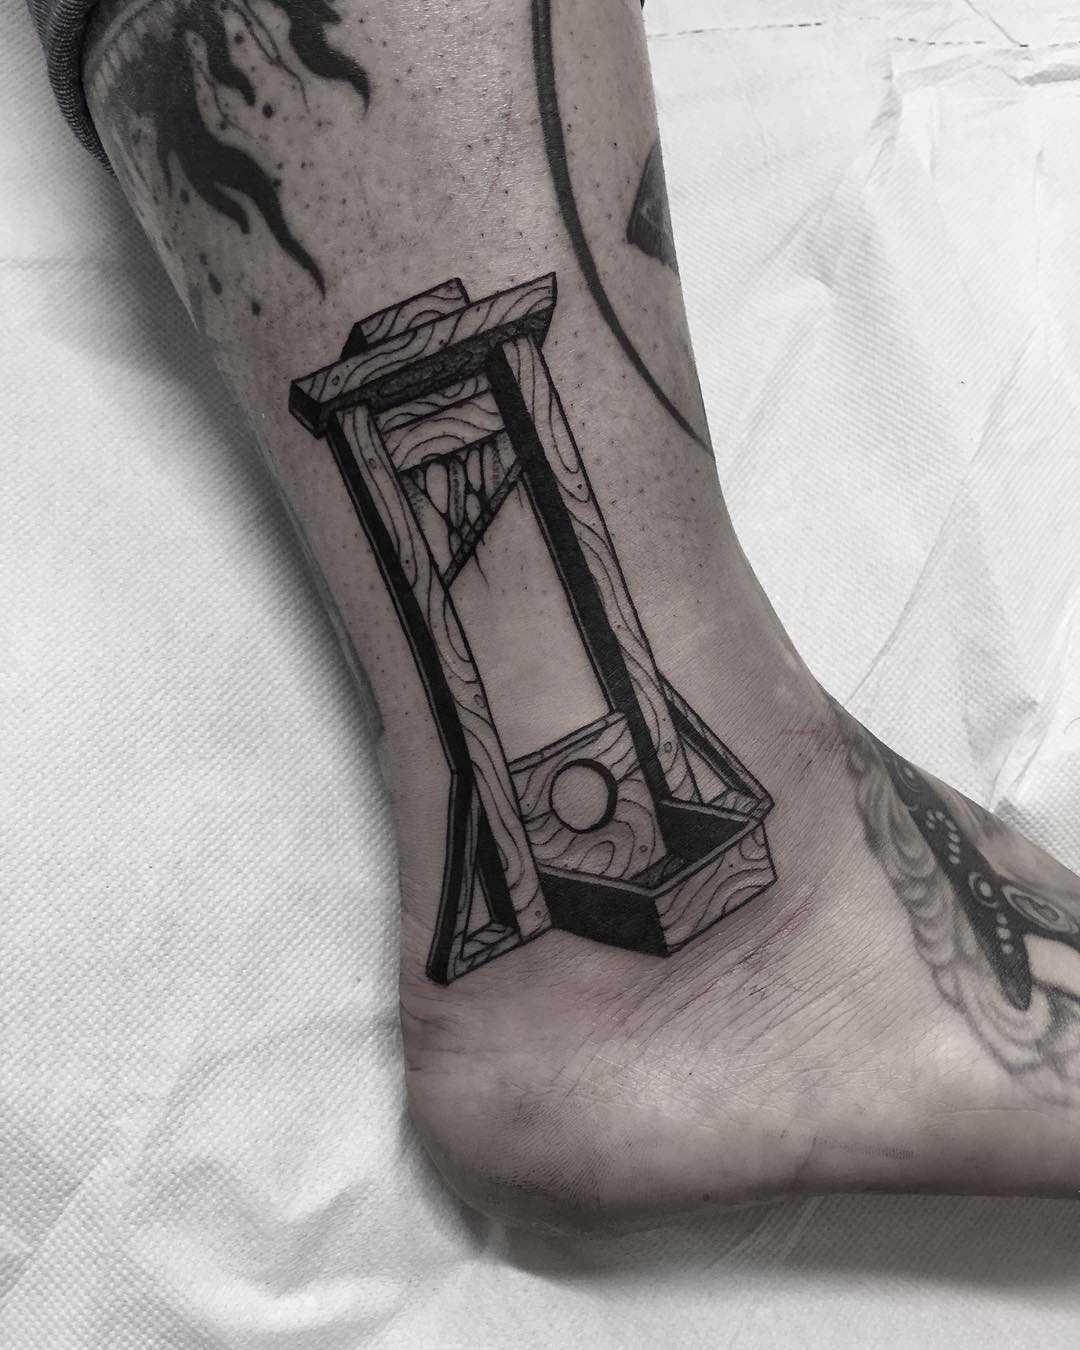 Guillotine tattoo done at Primordial Pain Tattoo